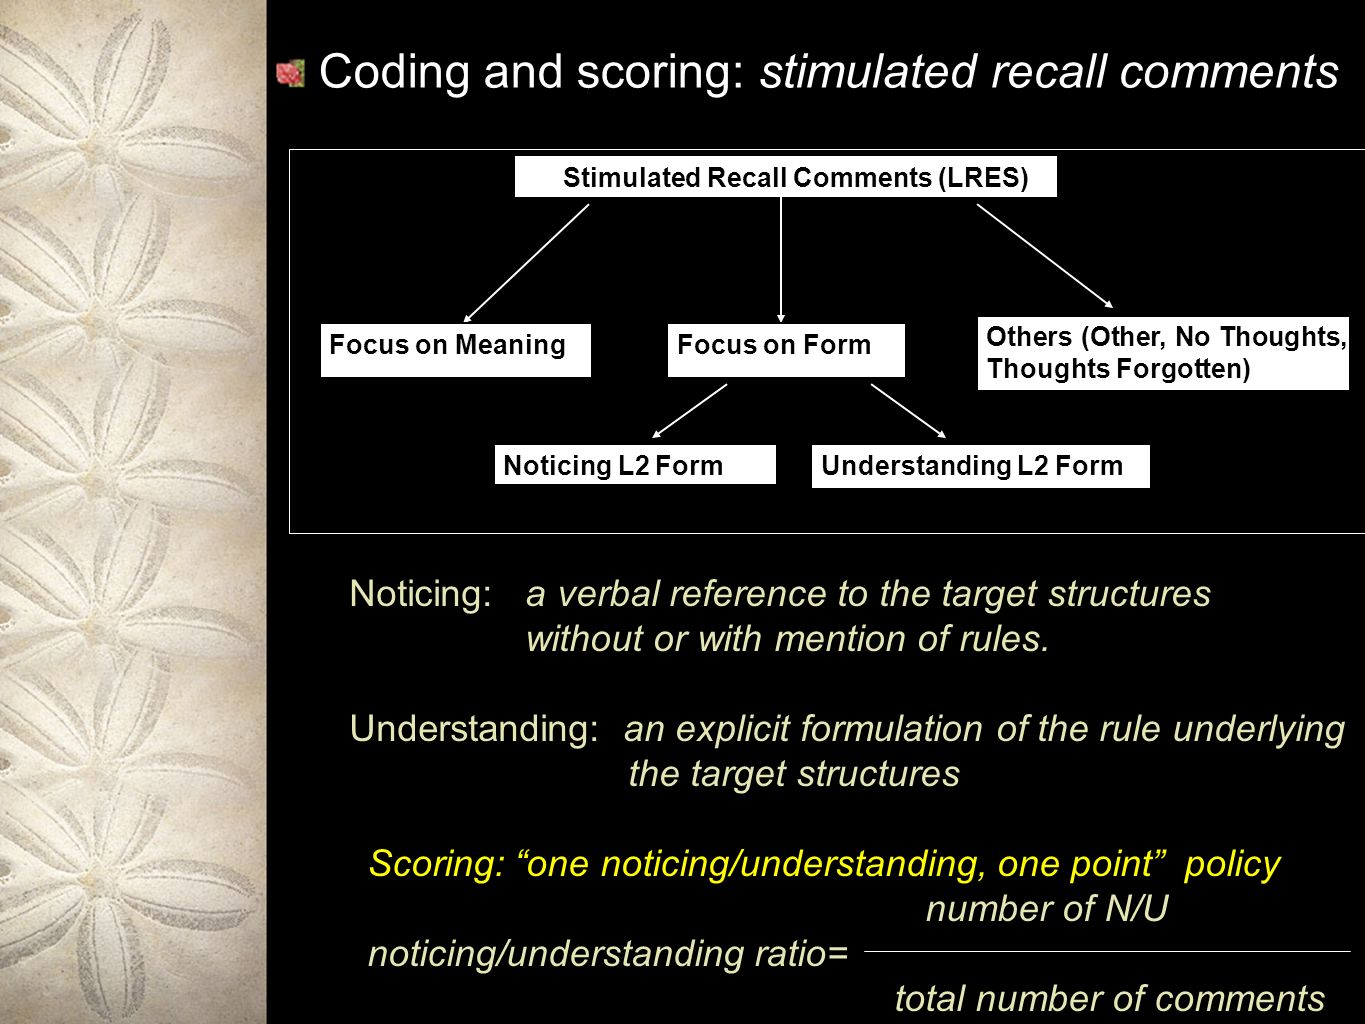 Coding and scoring: stimulated recall comments